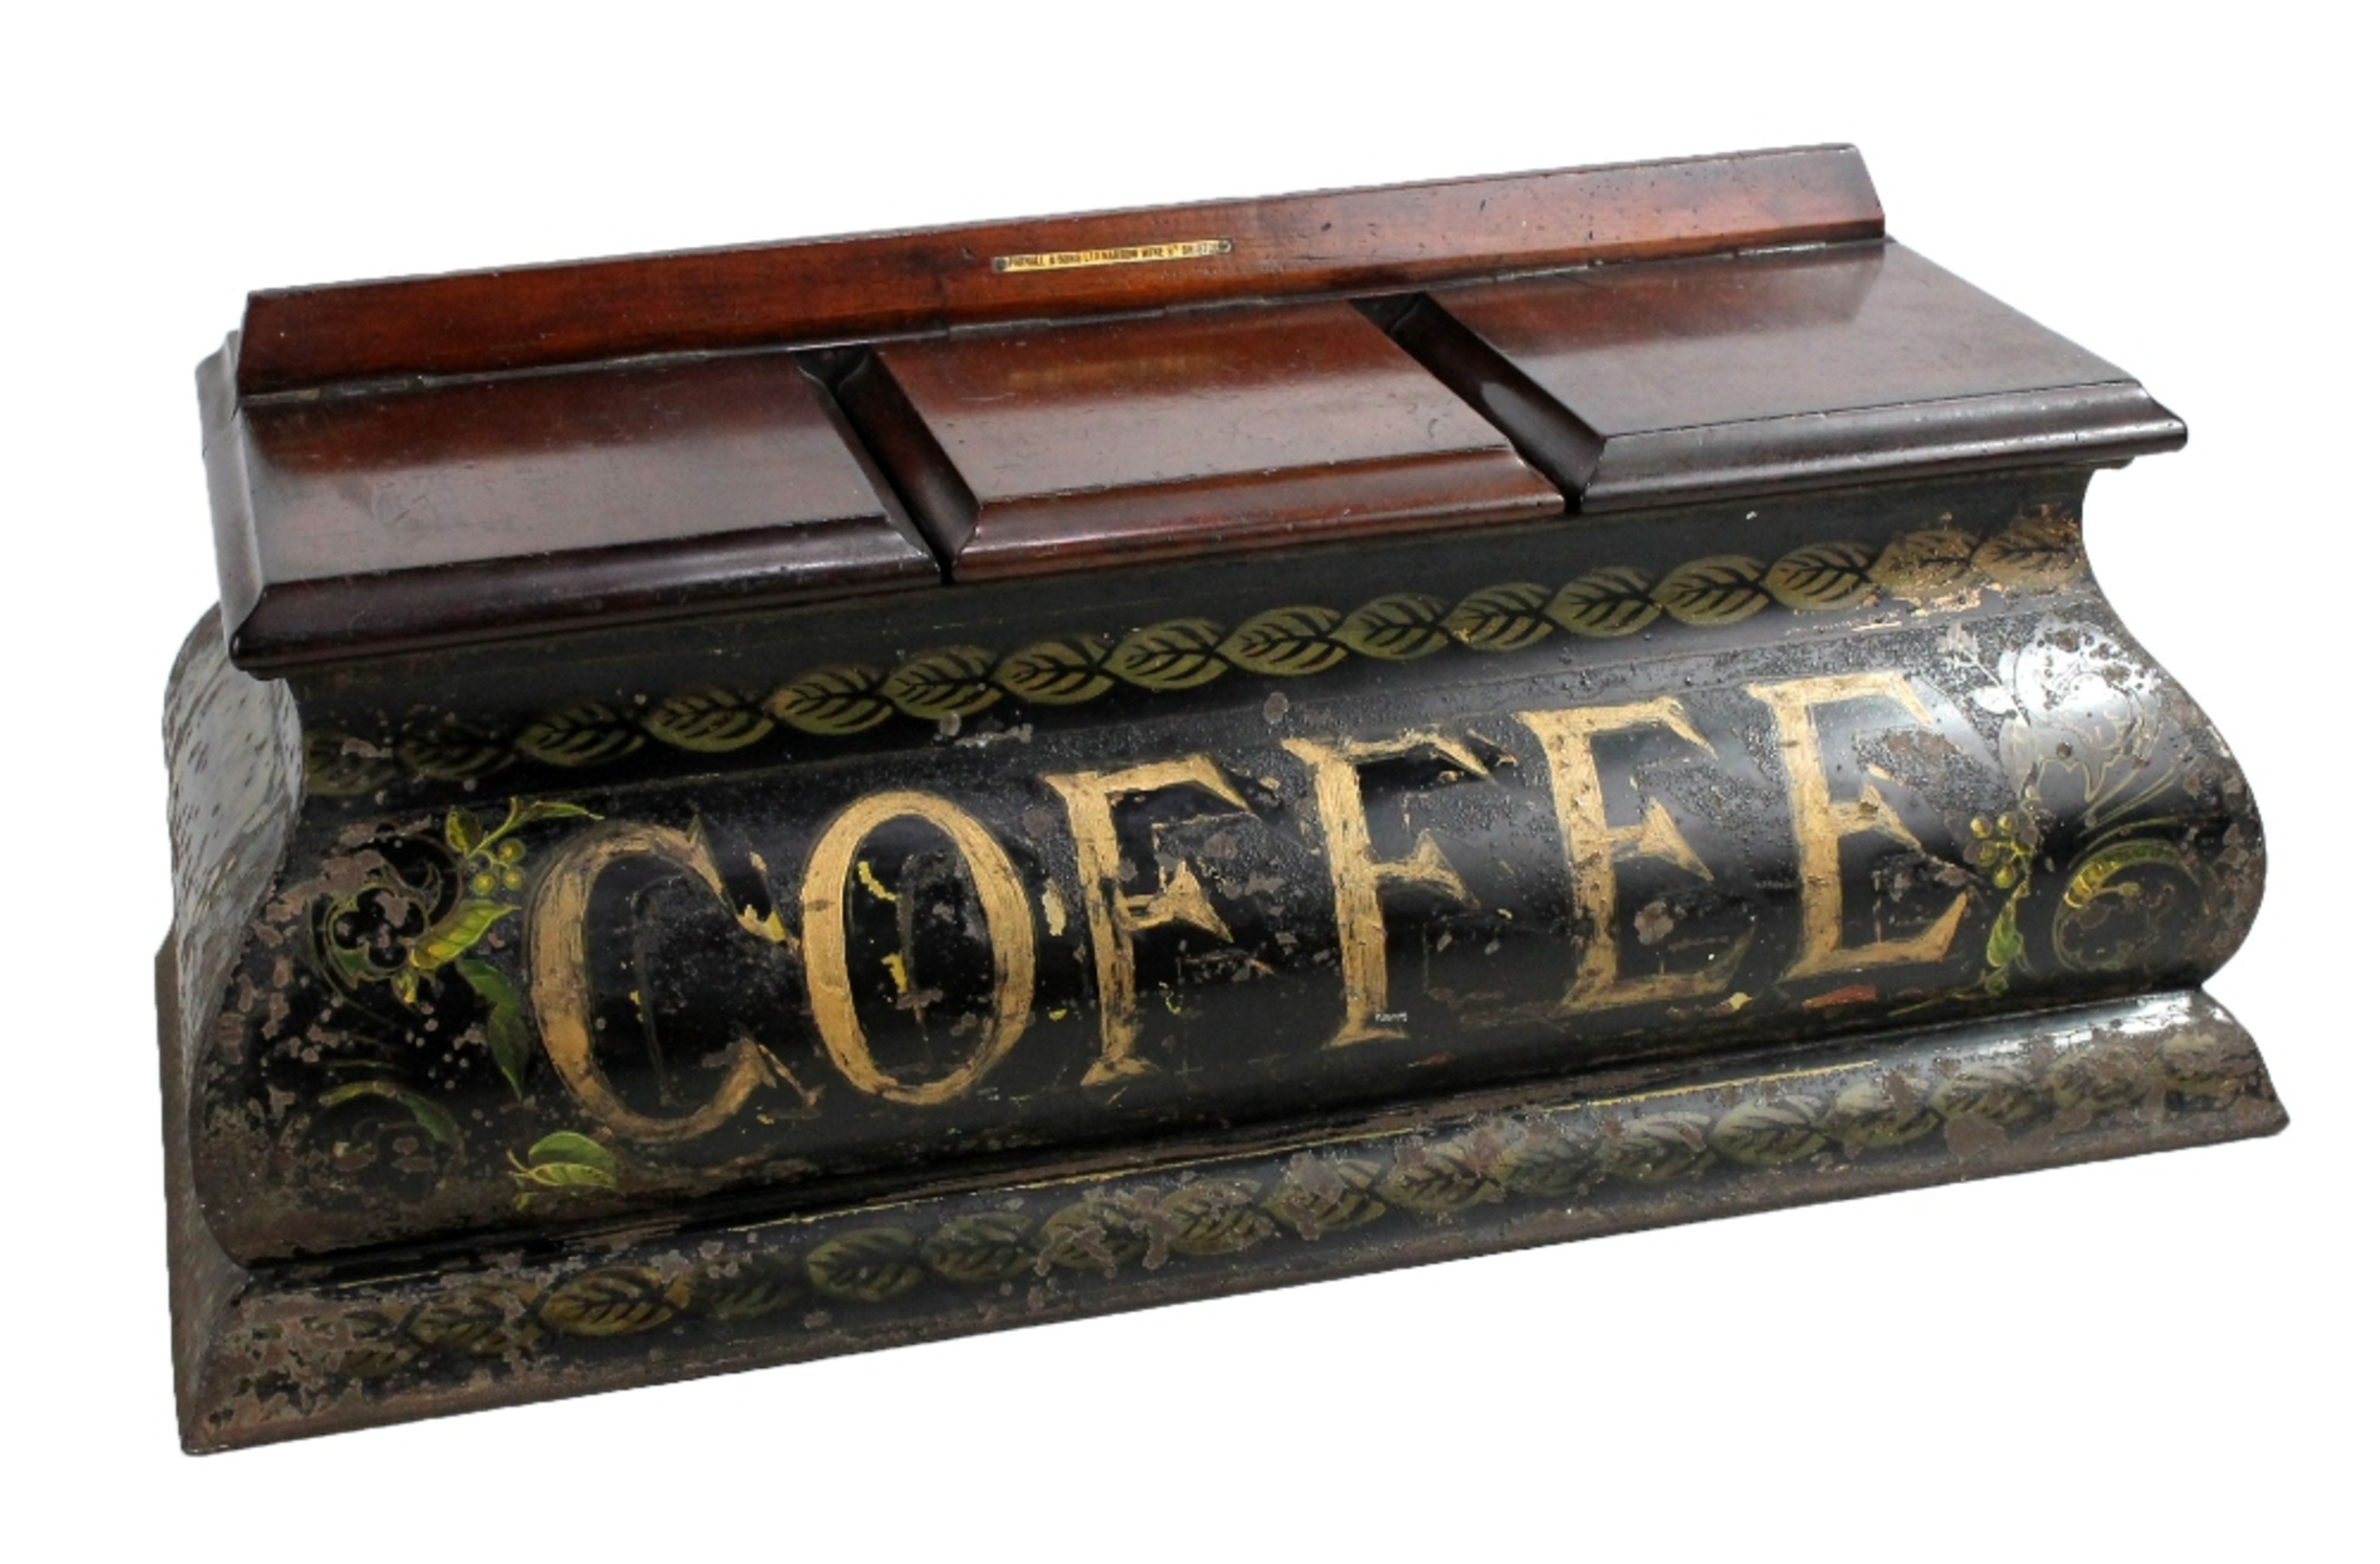 Lot 34A - PARNALL & SONS; a rare 19th century Toleware and mahogany triple section coffee container, the